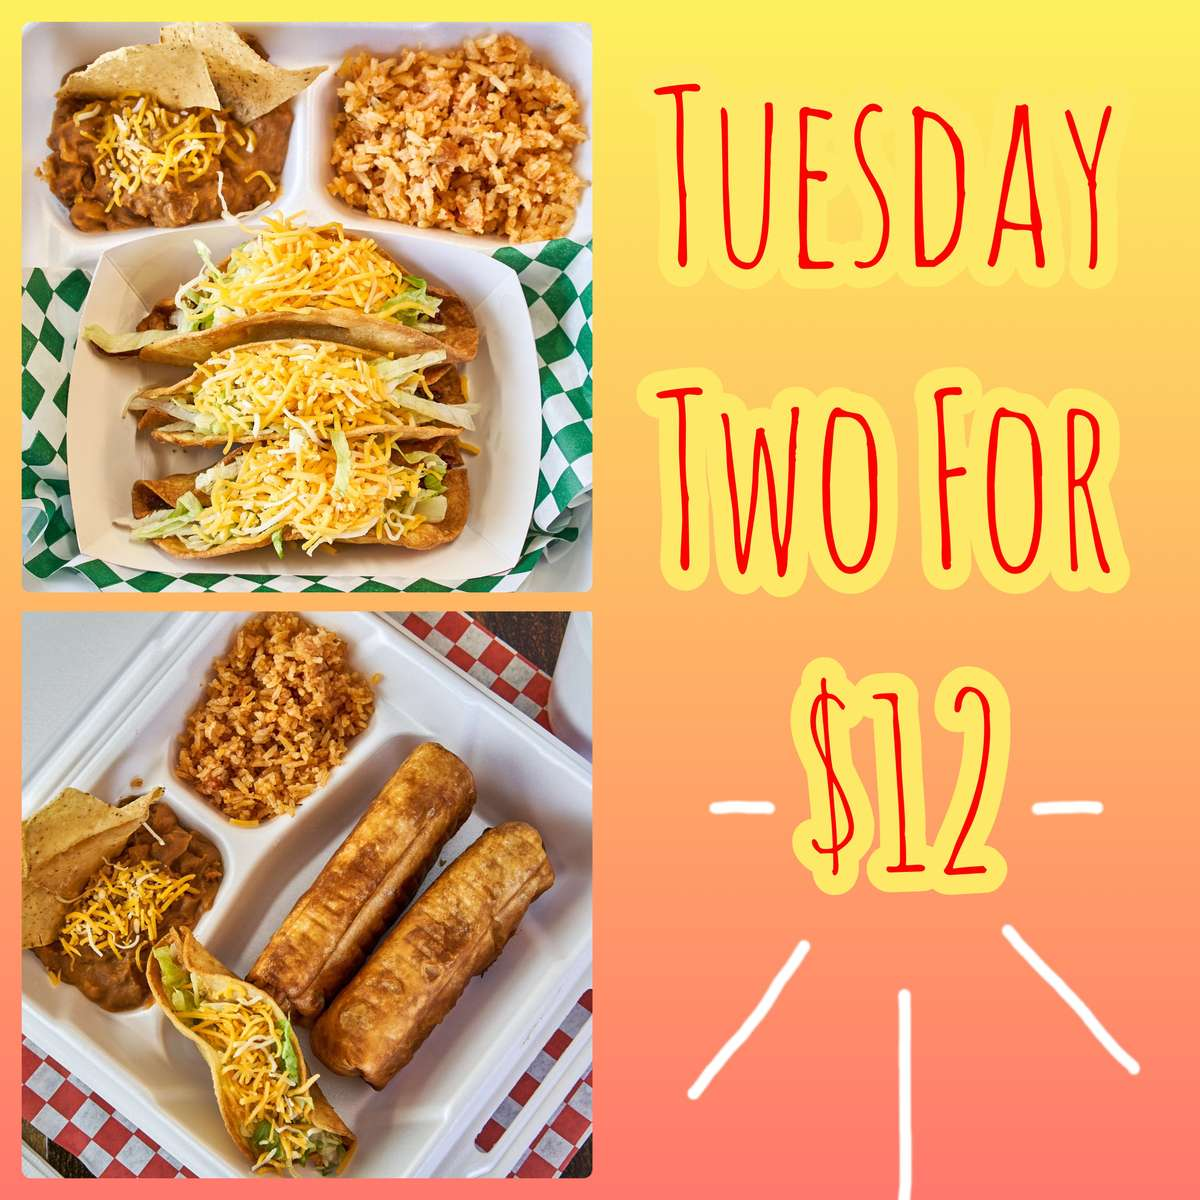 2 Dinners for $14